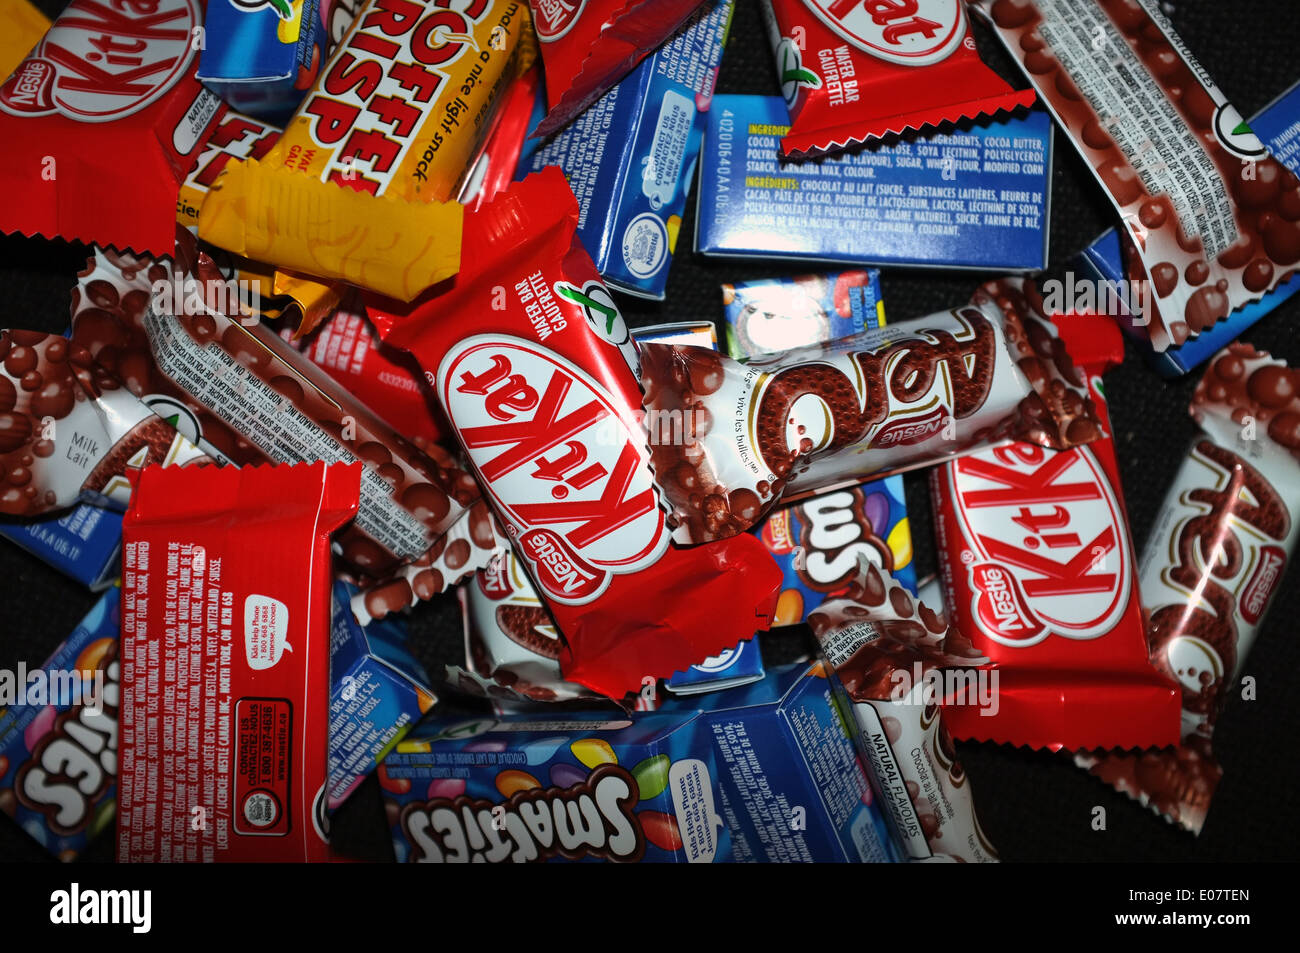 Aero, Coffee Crisp, Kit Kat and Smarties chocolates photographed against a black background. - Stock Image